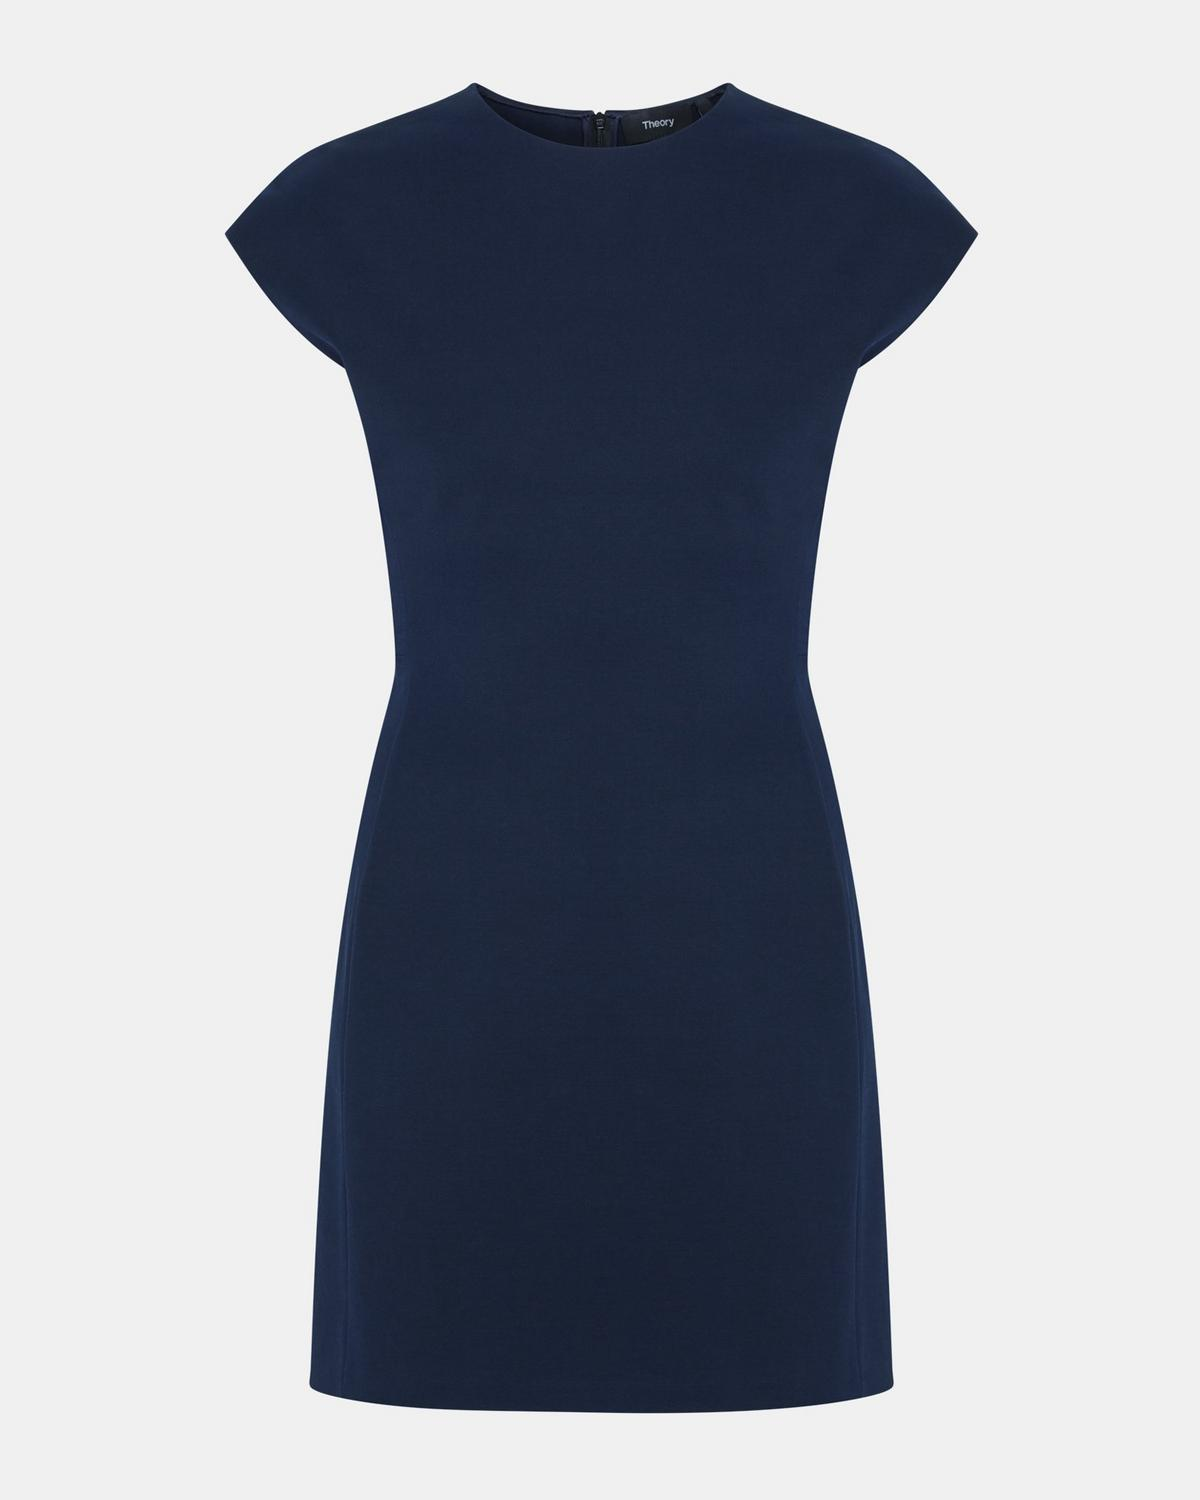 1f4f3c603f Double Stretch Cotton Structured Fitted Dress 1 - click to view larger  image ...